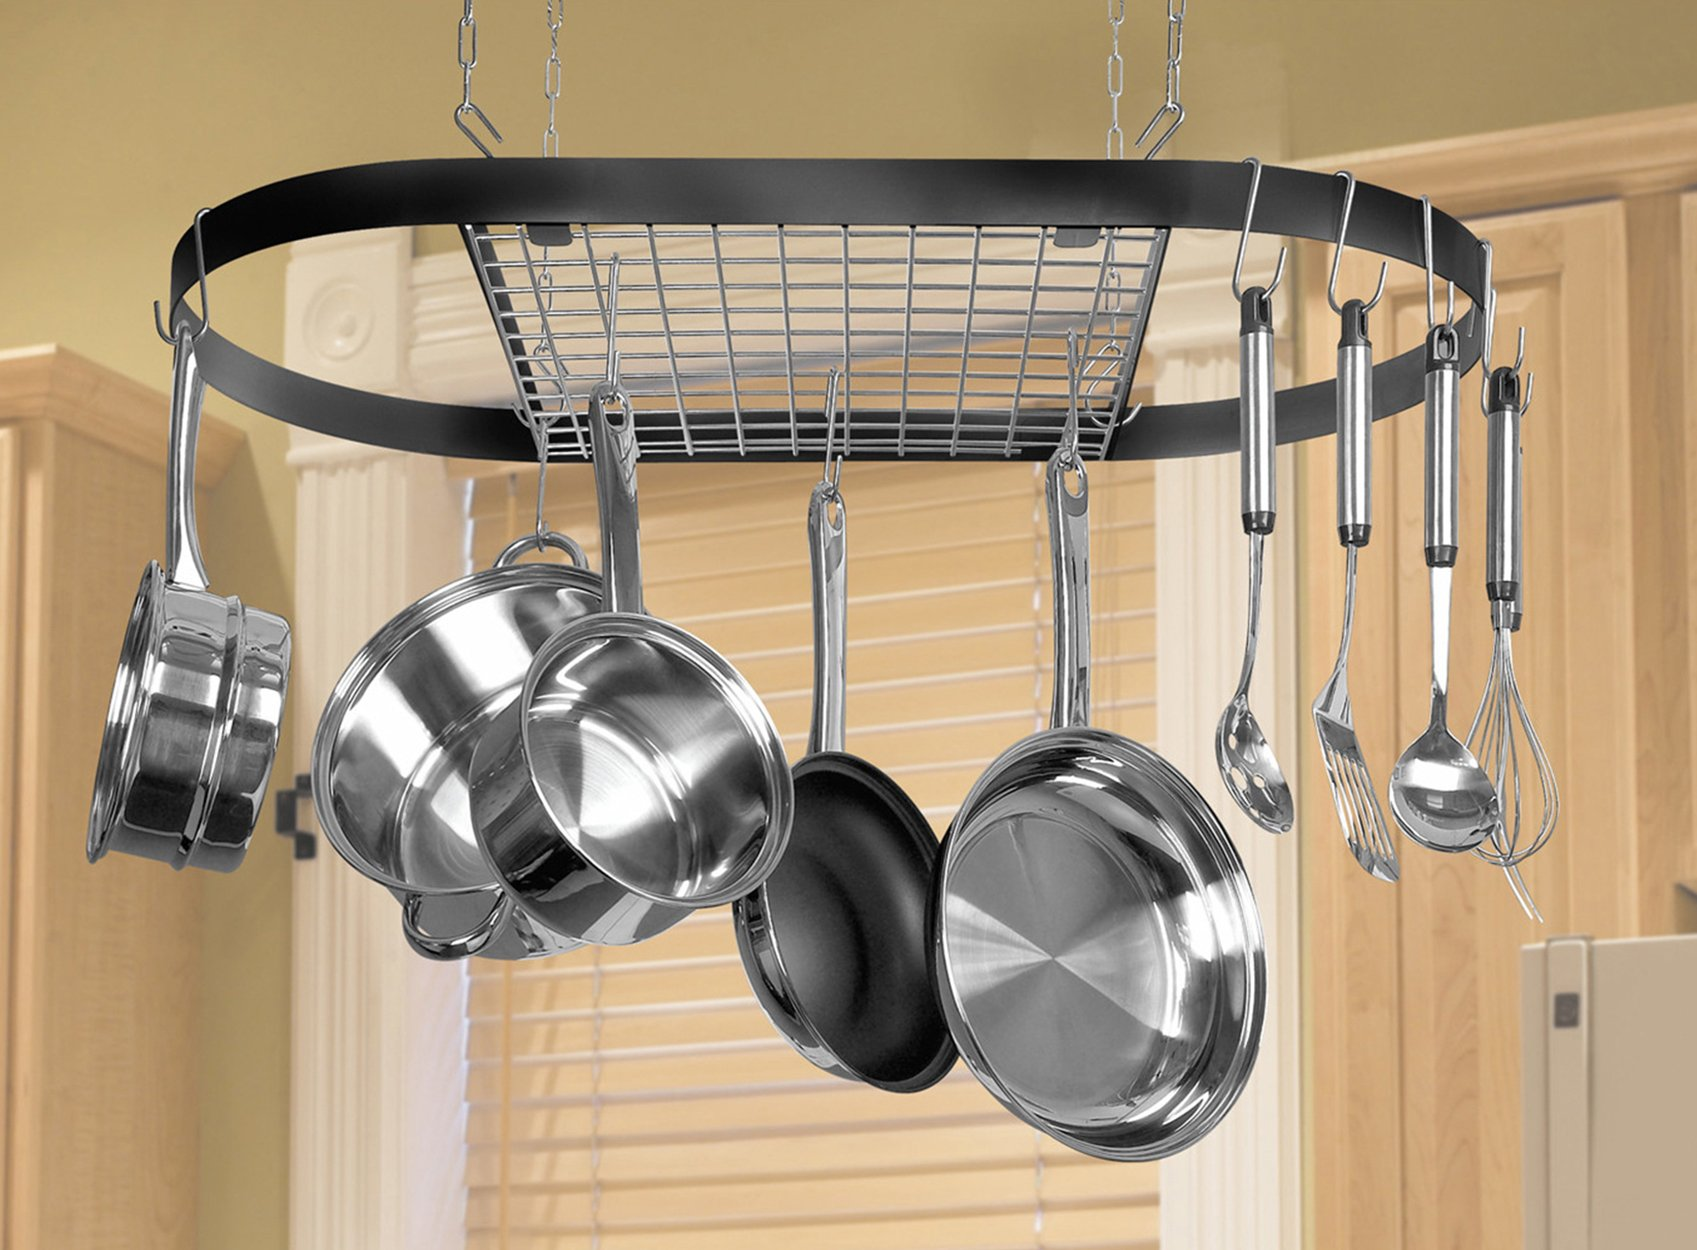 Kinetic Classicor Series Wrought-Iron Oval Pot Rack 12021 by Kinetic (Image #2)